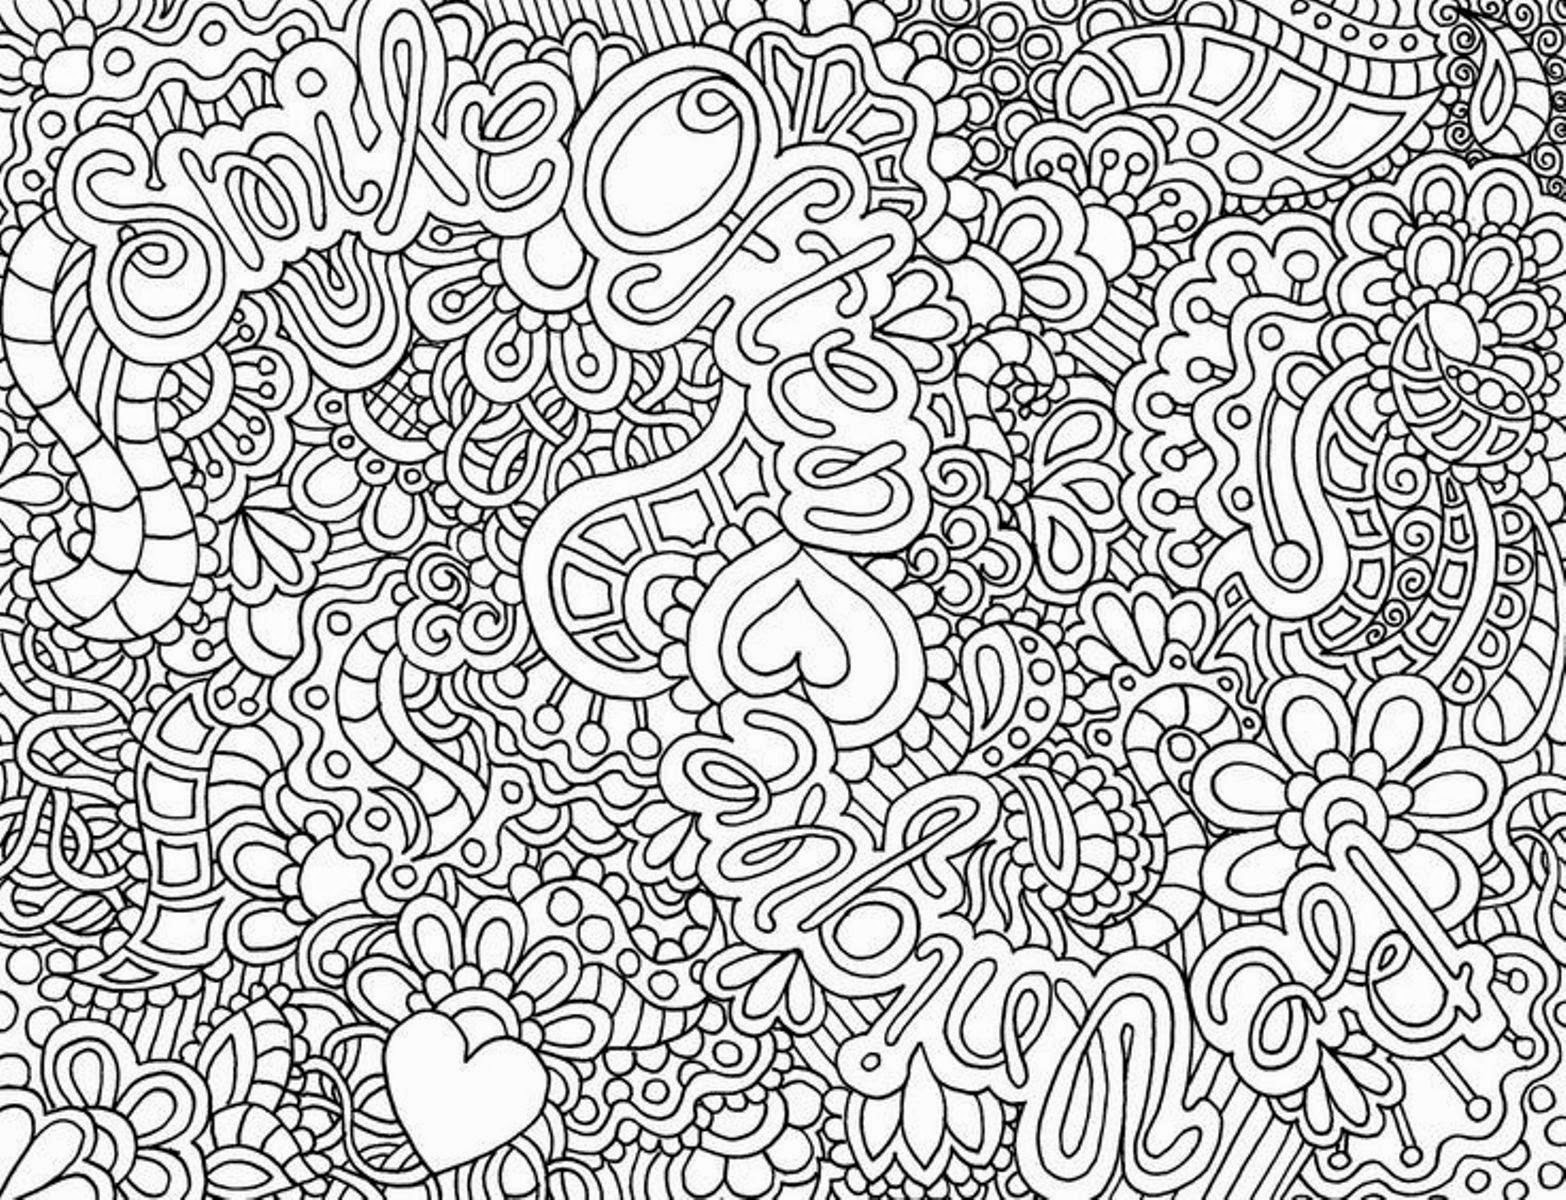 Coloring Pages: Difficult But Fun Coloring Pages Free And